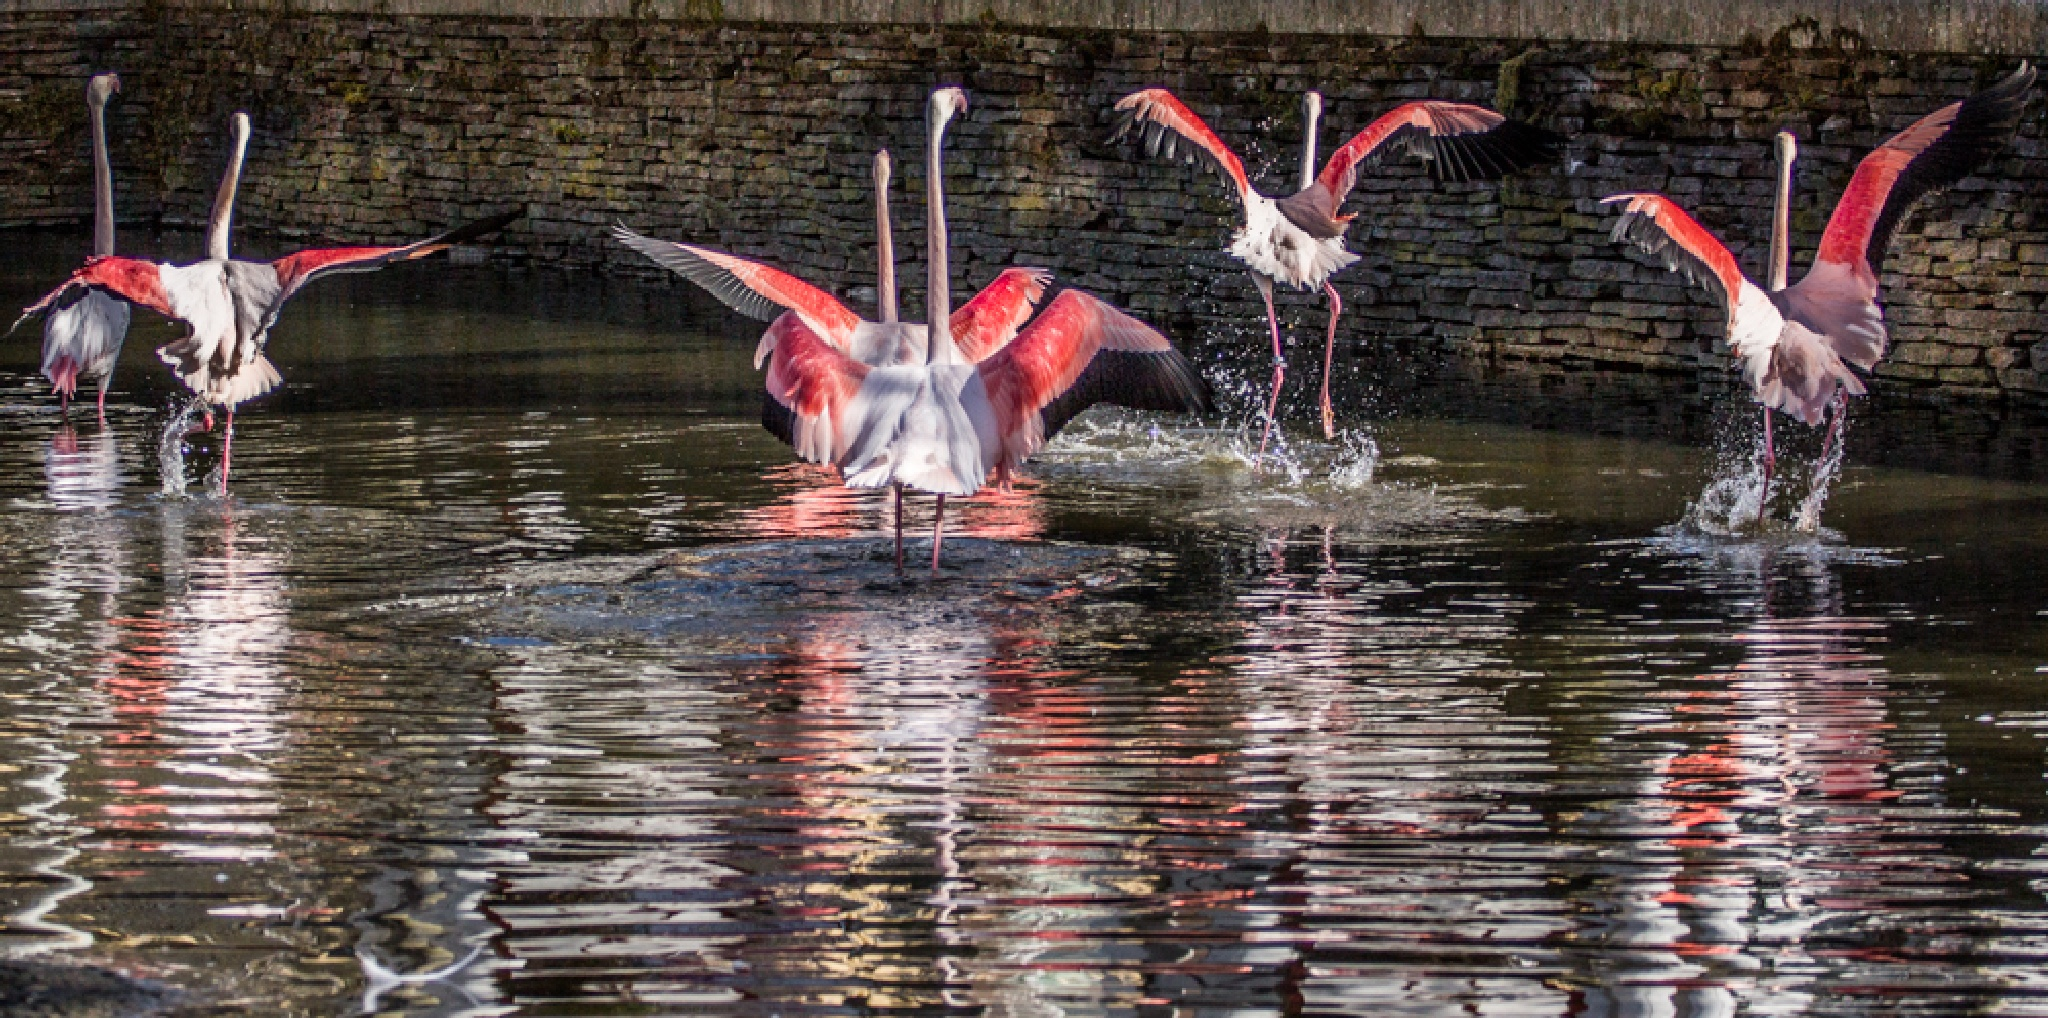 Dancing flamingo's by Ronny Andries